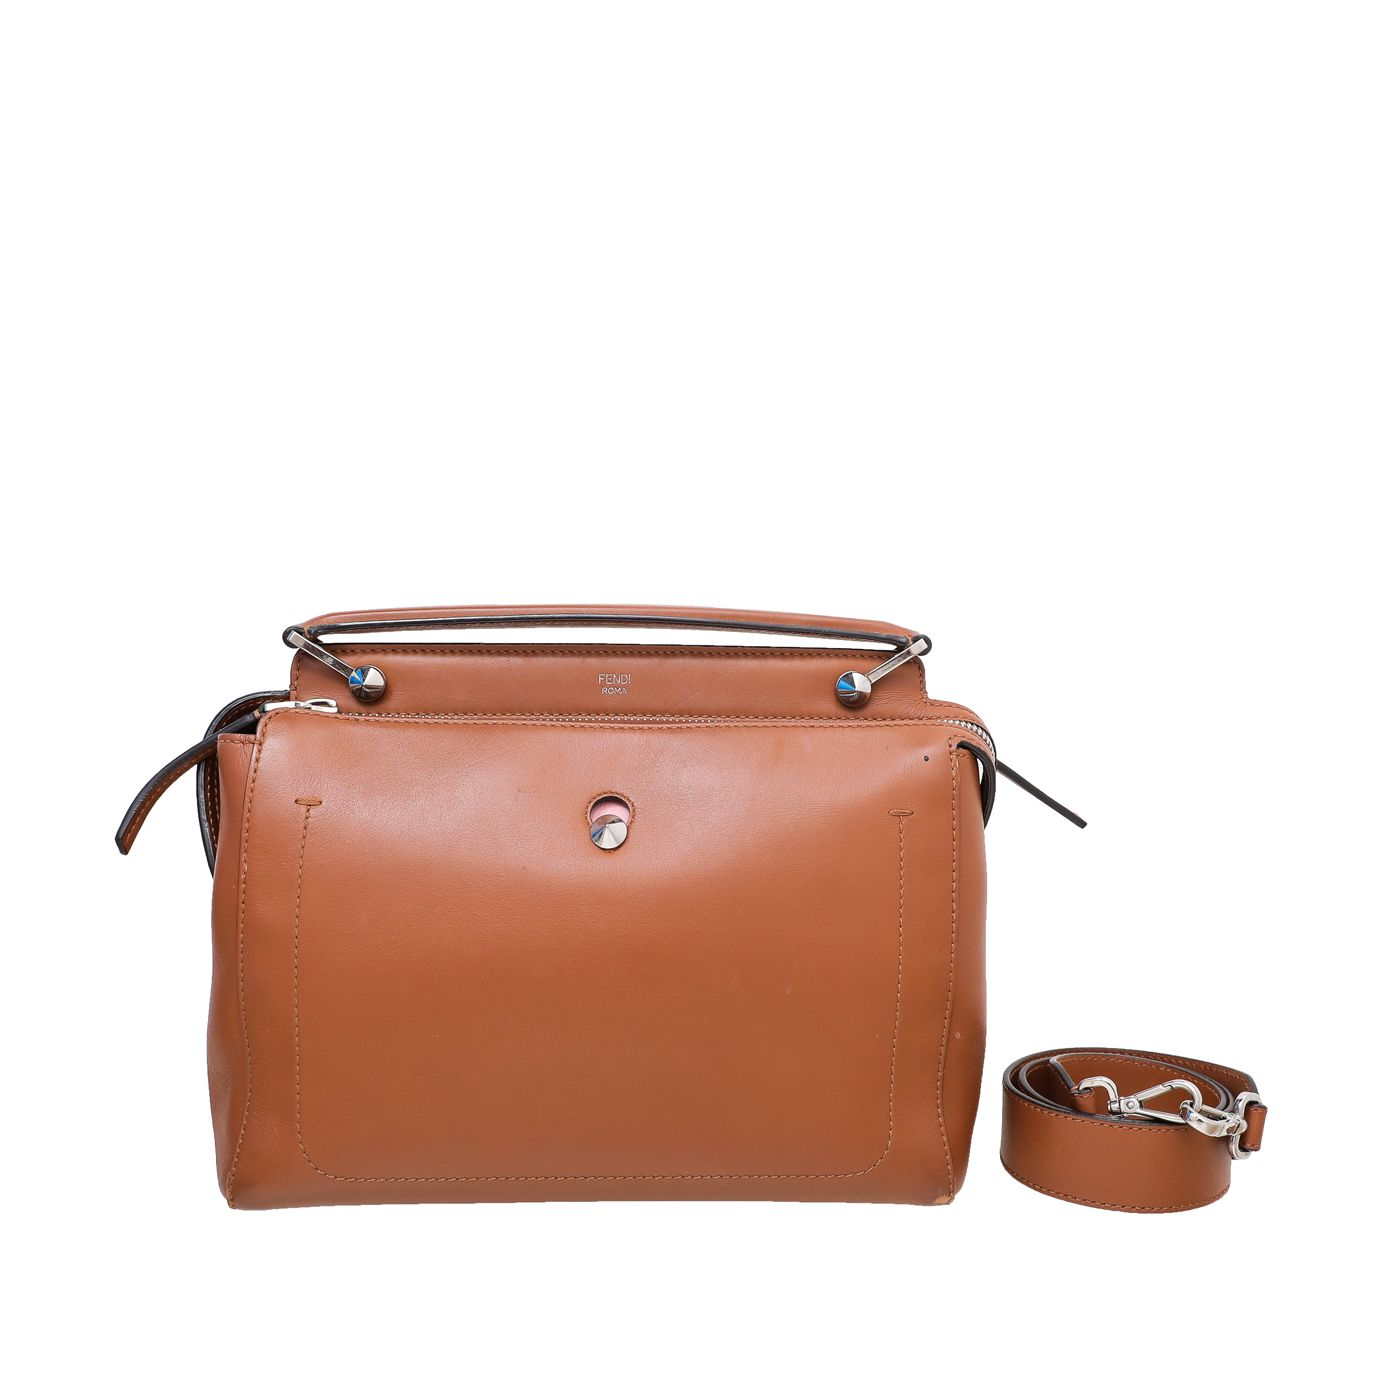 Fendi Tan Dotcom Top Handle Bag